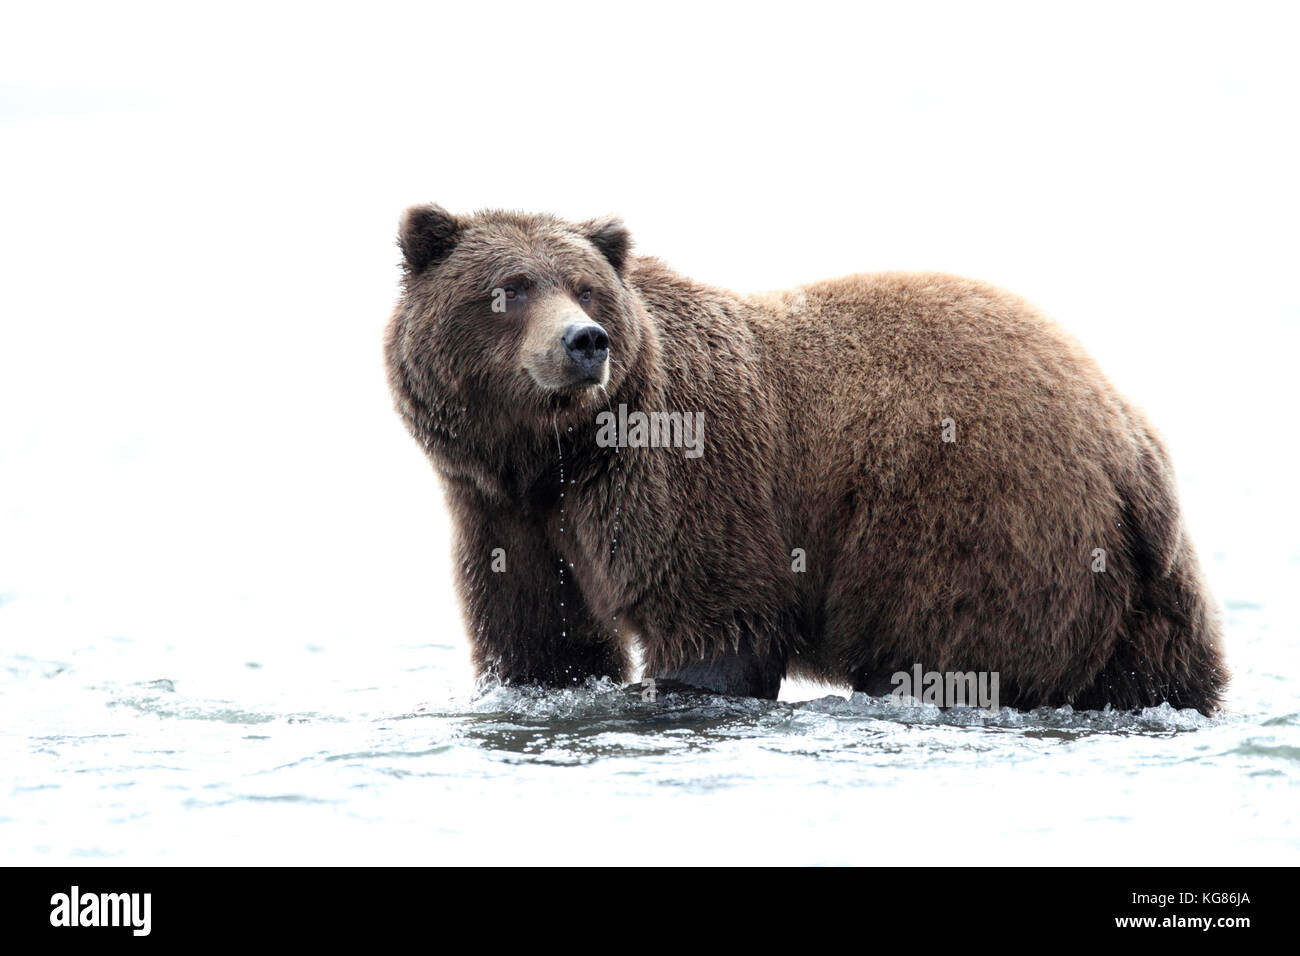 A regal closeup portrait of an Alaska brown bear, or grizzly, standing in the water of coastal Alaska with a white Stock Photo